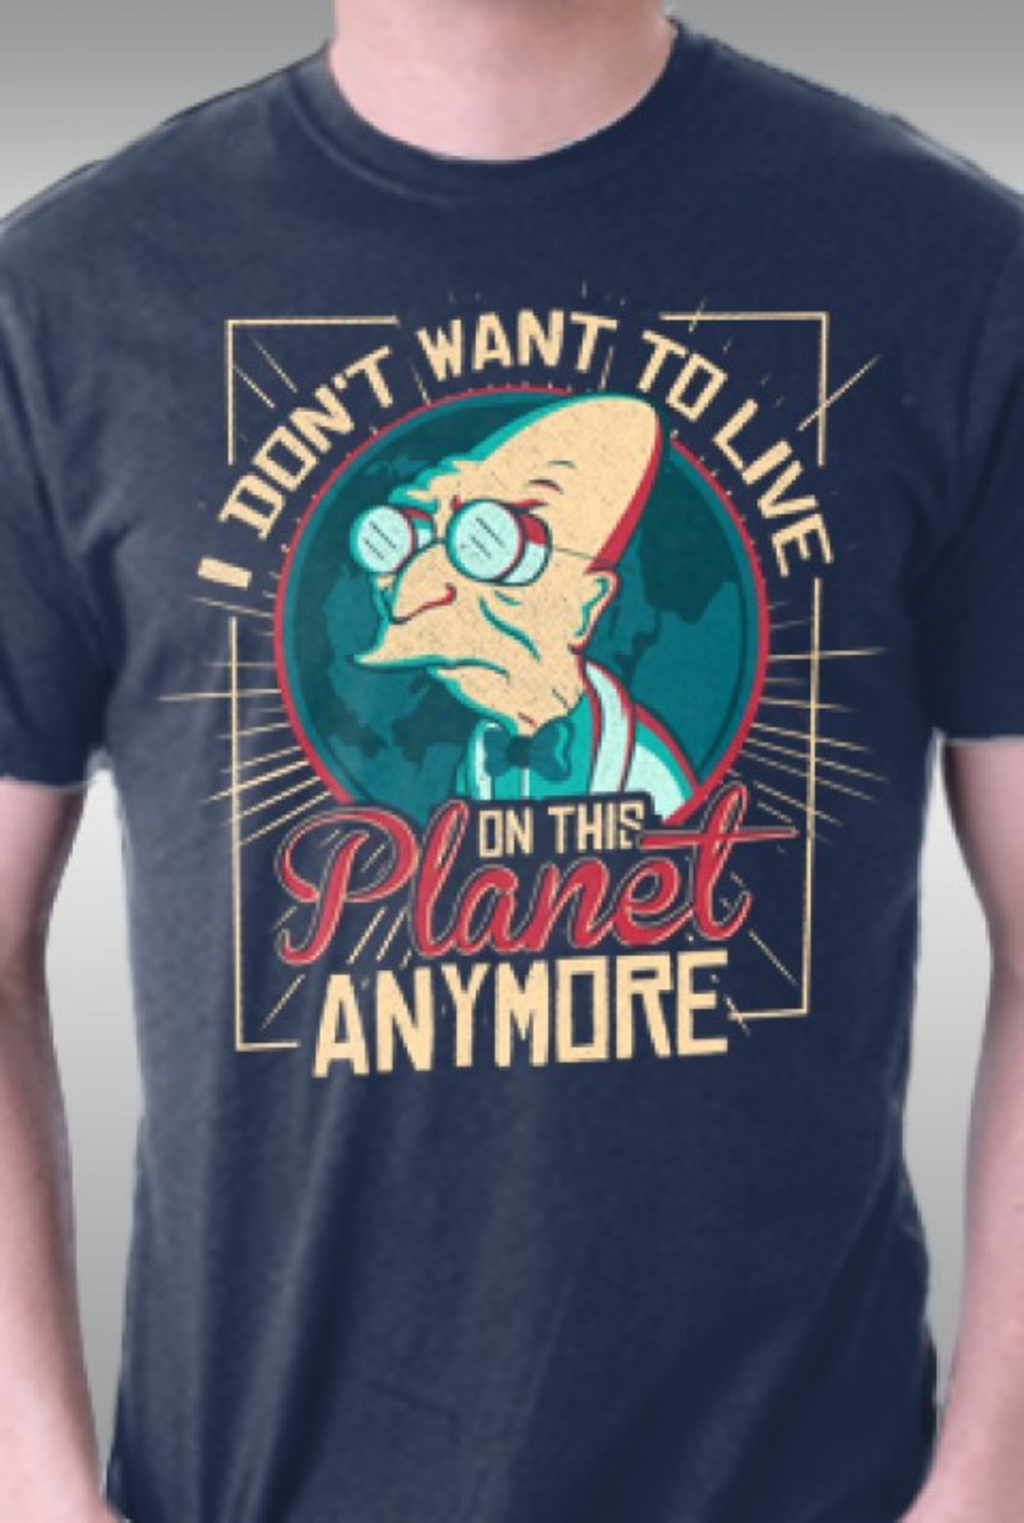 TeeFury: I Don't Want To Live On This Planet Anymore